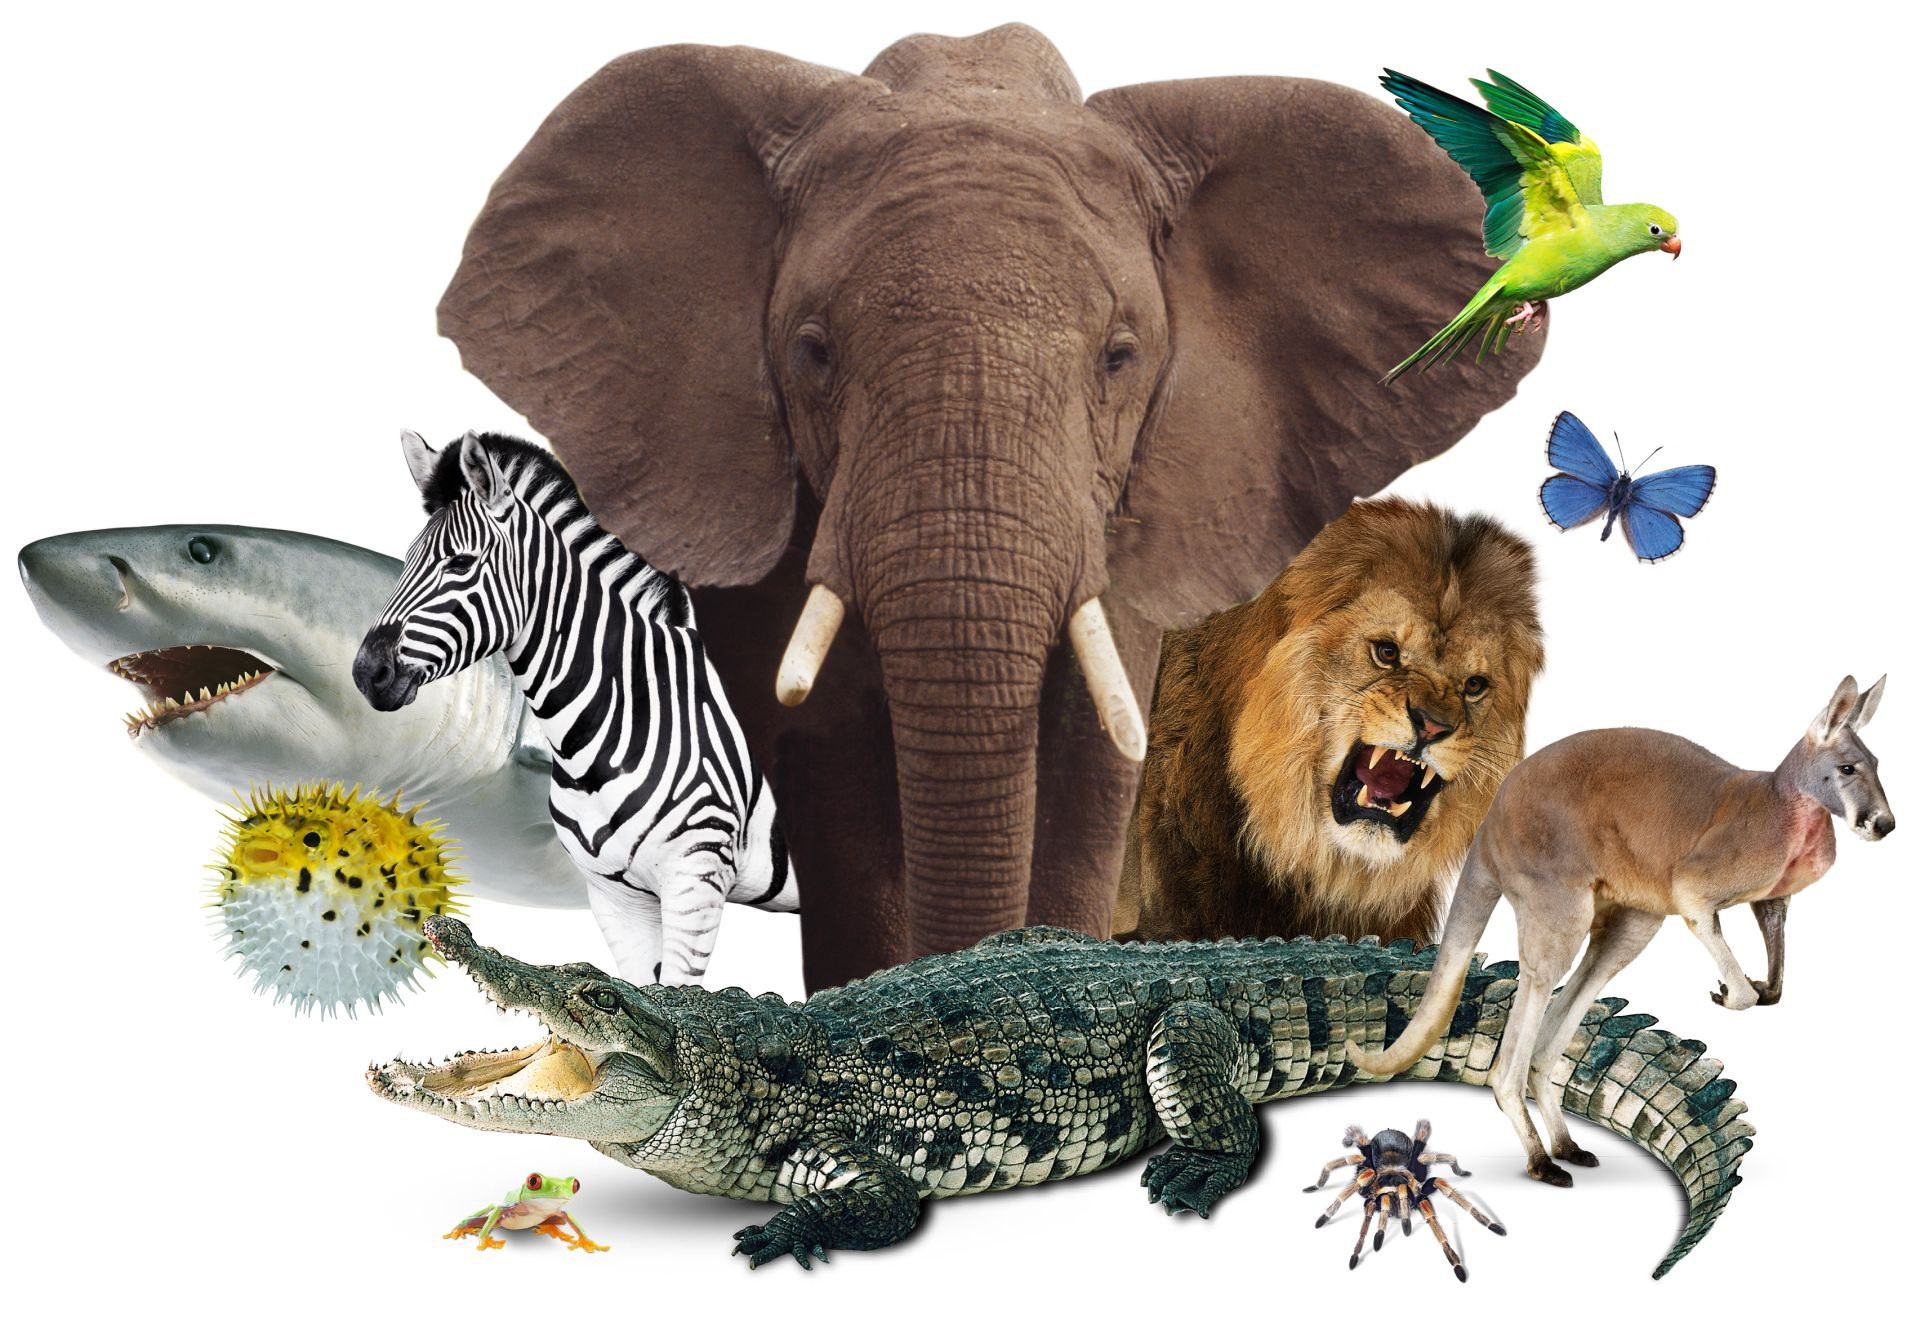 The Animal World | The Animal Kingdom | DK Find Out